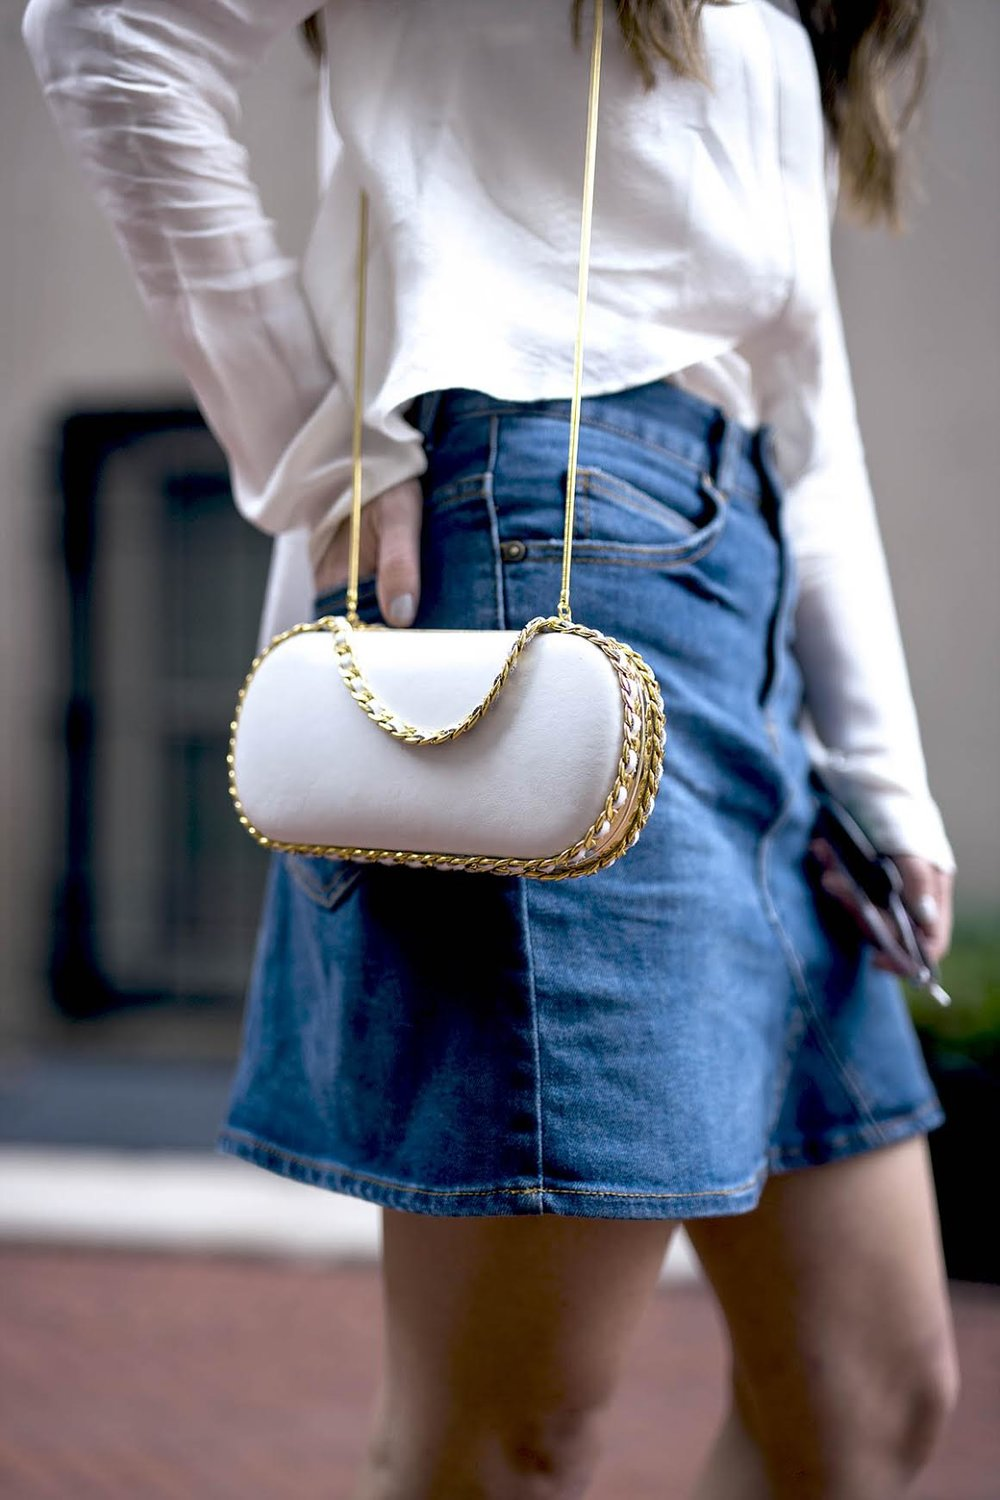 White Silk Top Chelsea and Walker Louboutins & Love Fashion Blog Esther Santer NYC Street Style Blogger Outfit OOTD Trendy Jean Denim Skirt Zara Clutch Bag Erin Dana Gold Chain Ivanka Trump Fringe Booties TeamIvanka Women Girl Transitional Pieces Fall.jpg